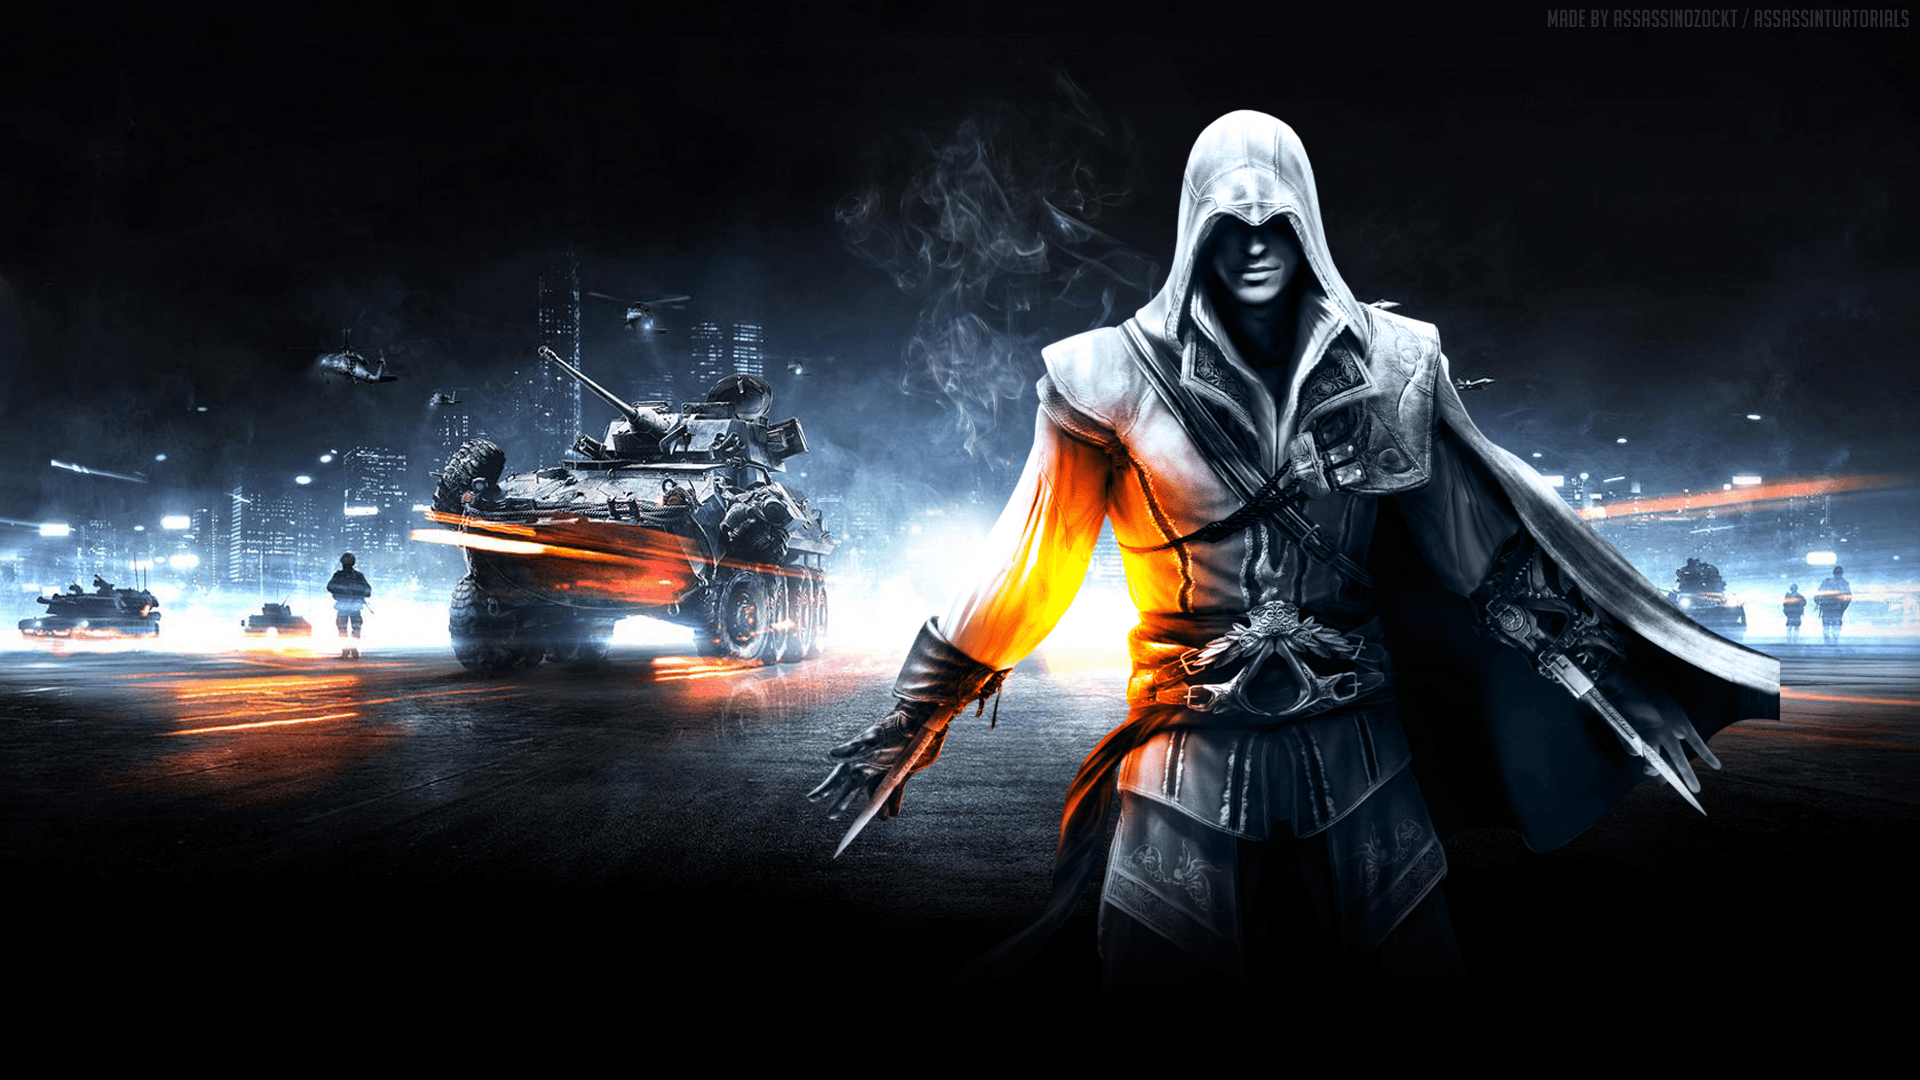 cool game wide hd wallpapers - bsnscb